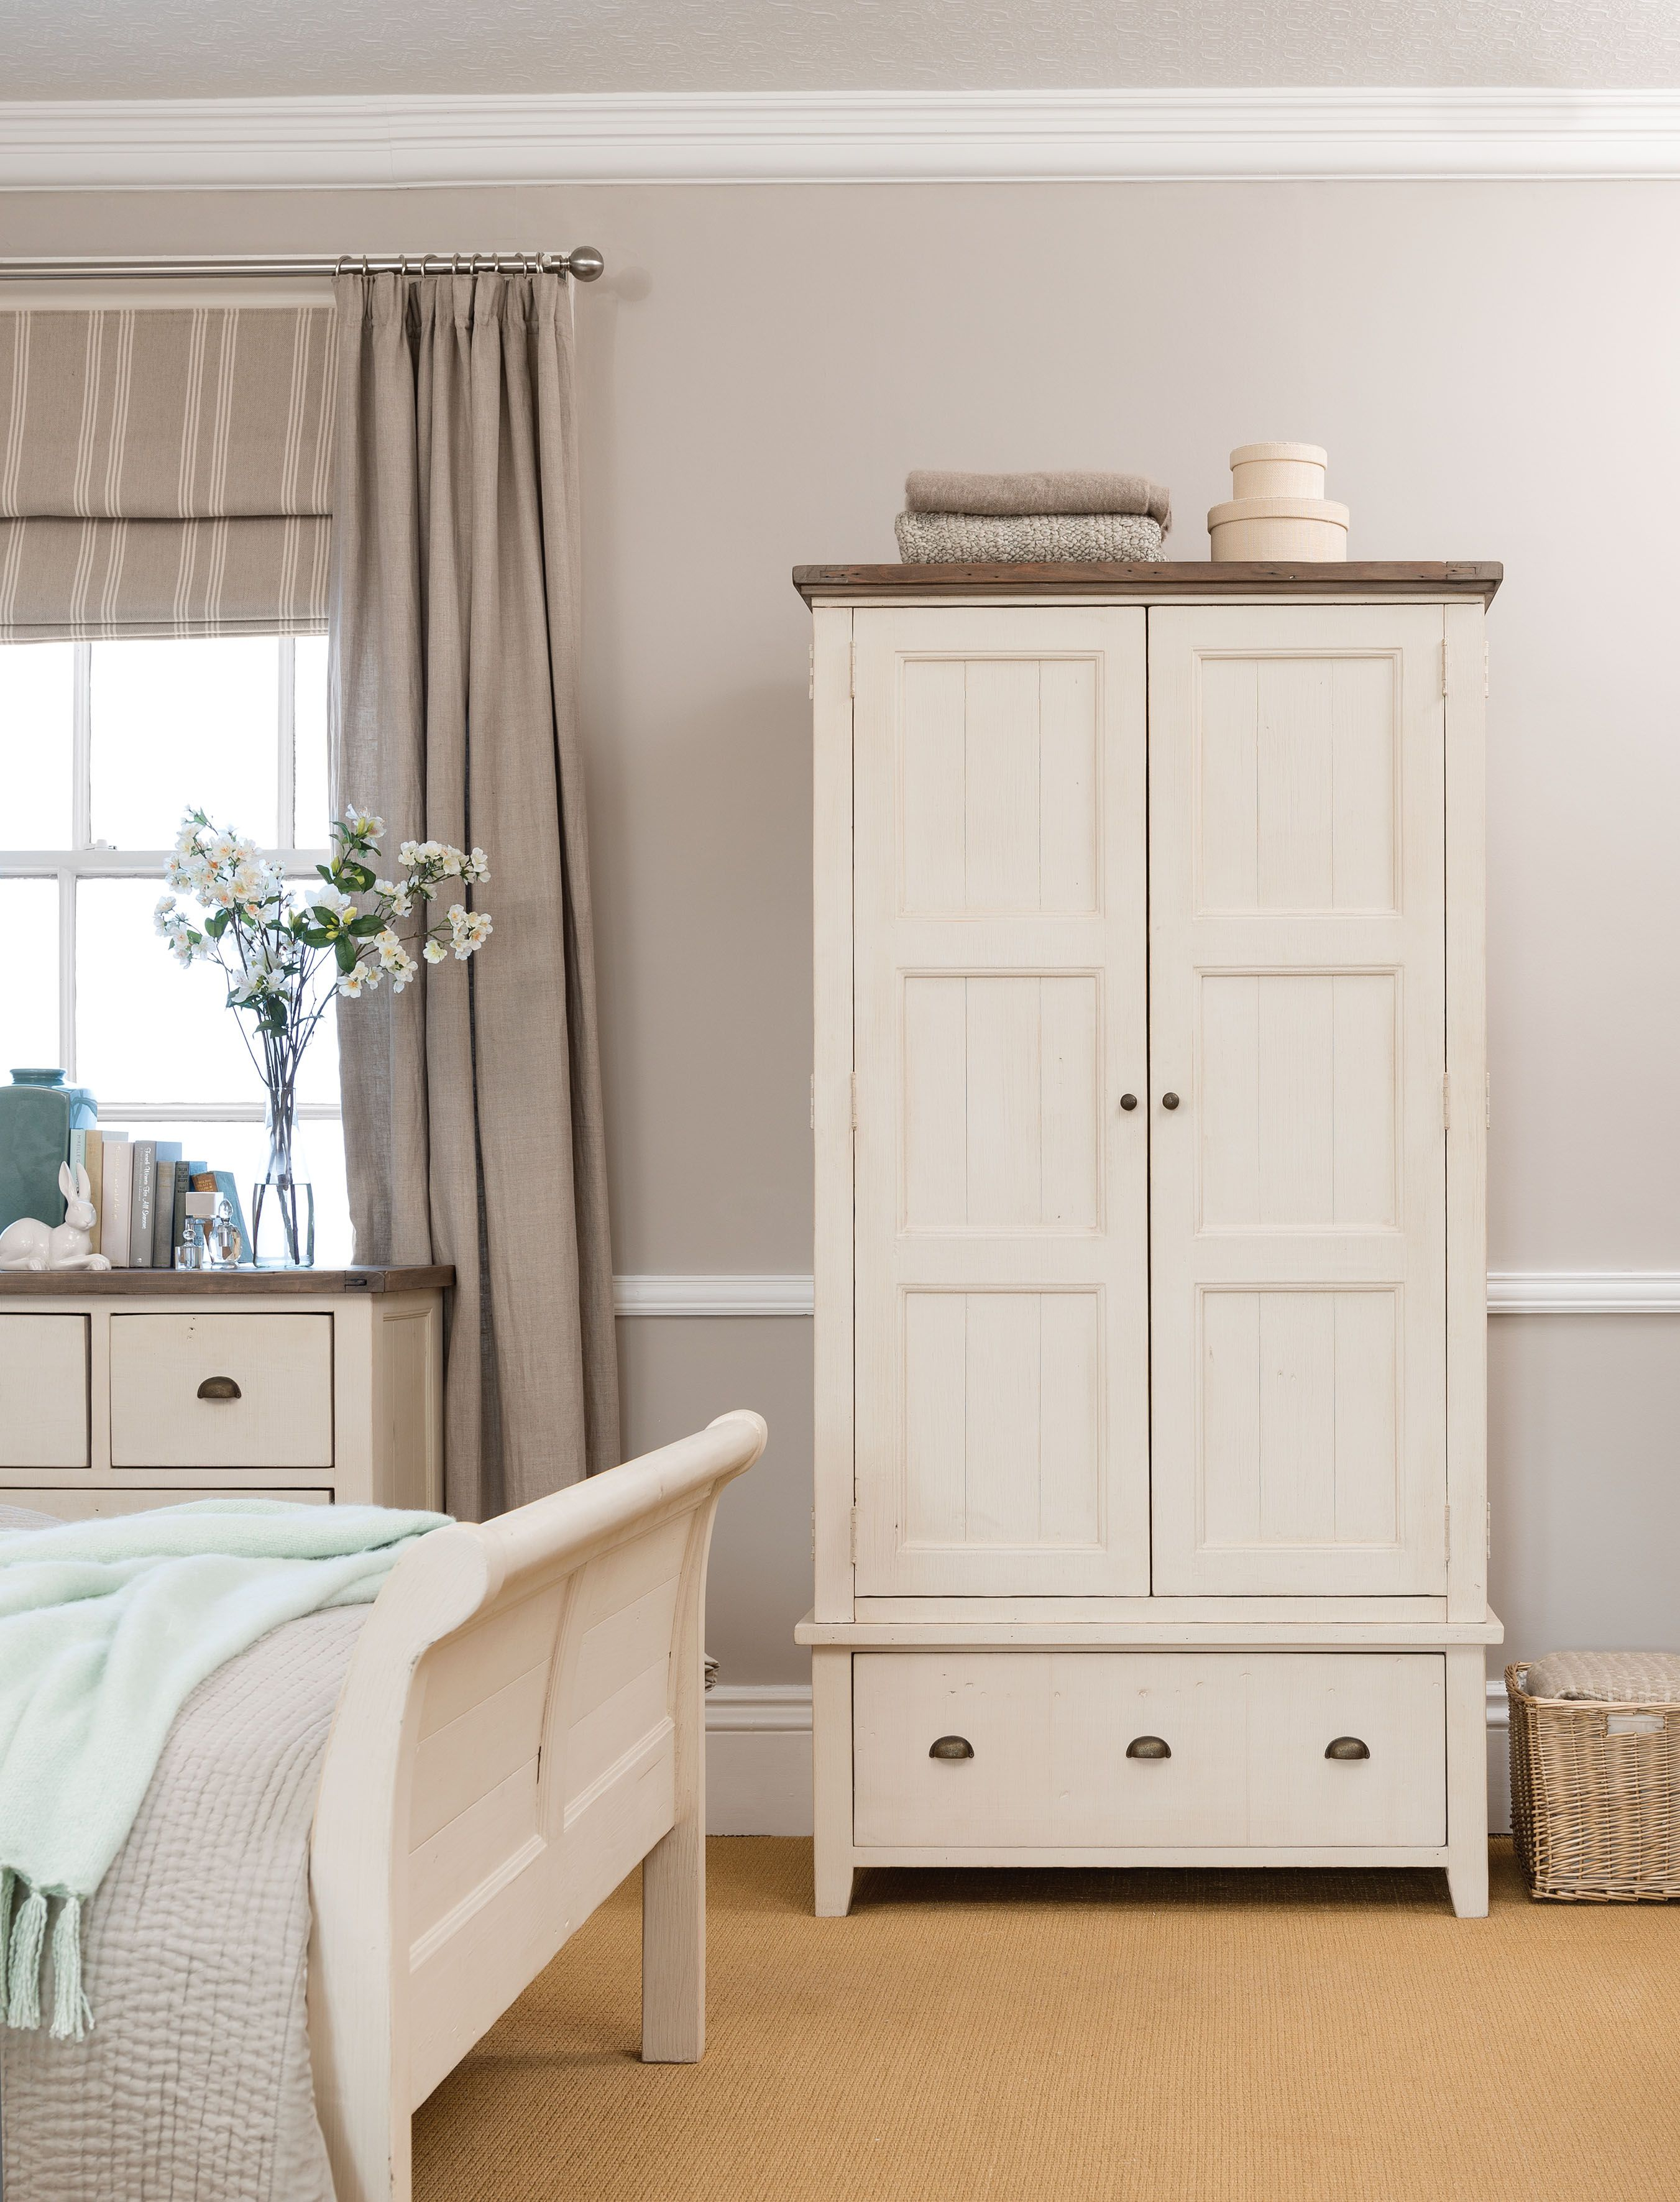 the cotswold bedroom furniture range has a simple elegant look rh pinterest at cotswold bedroom furniture uk cotswold bedroom furniture sale